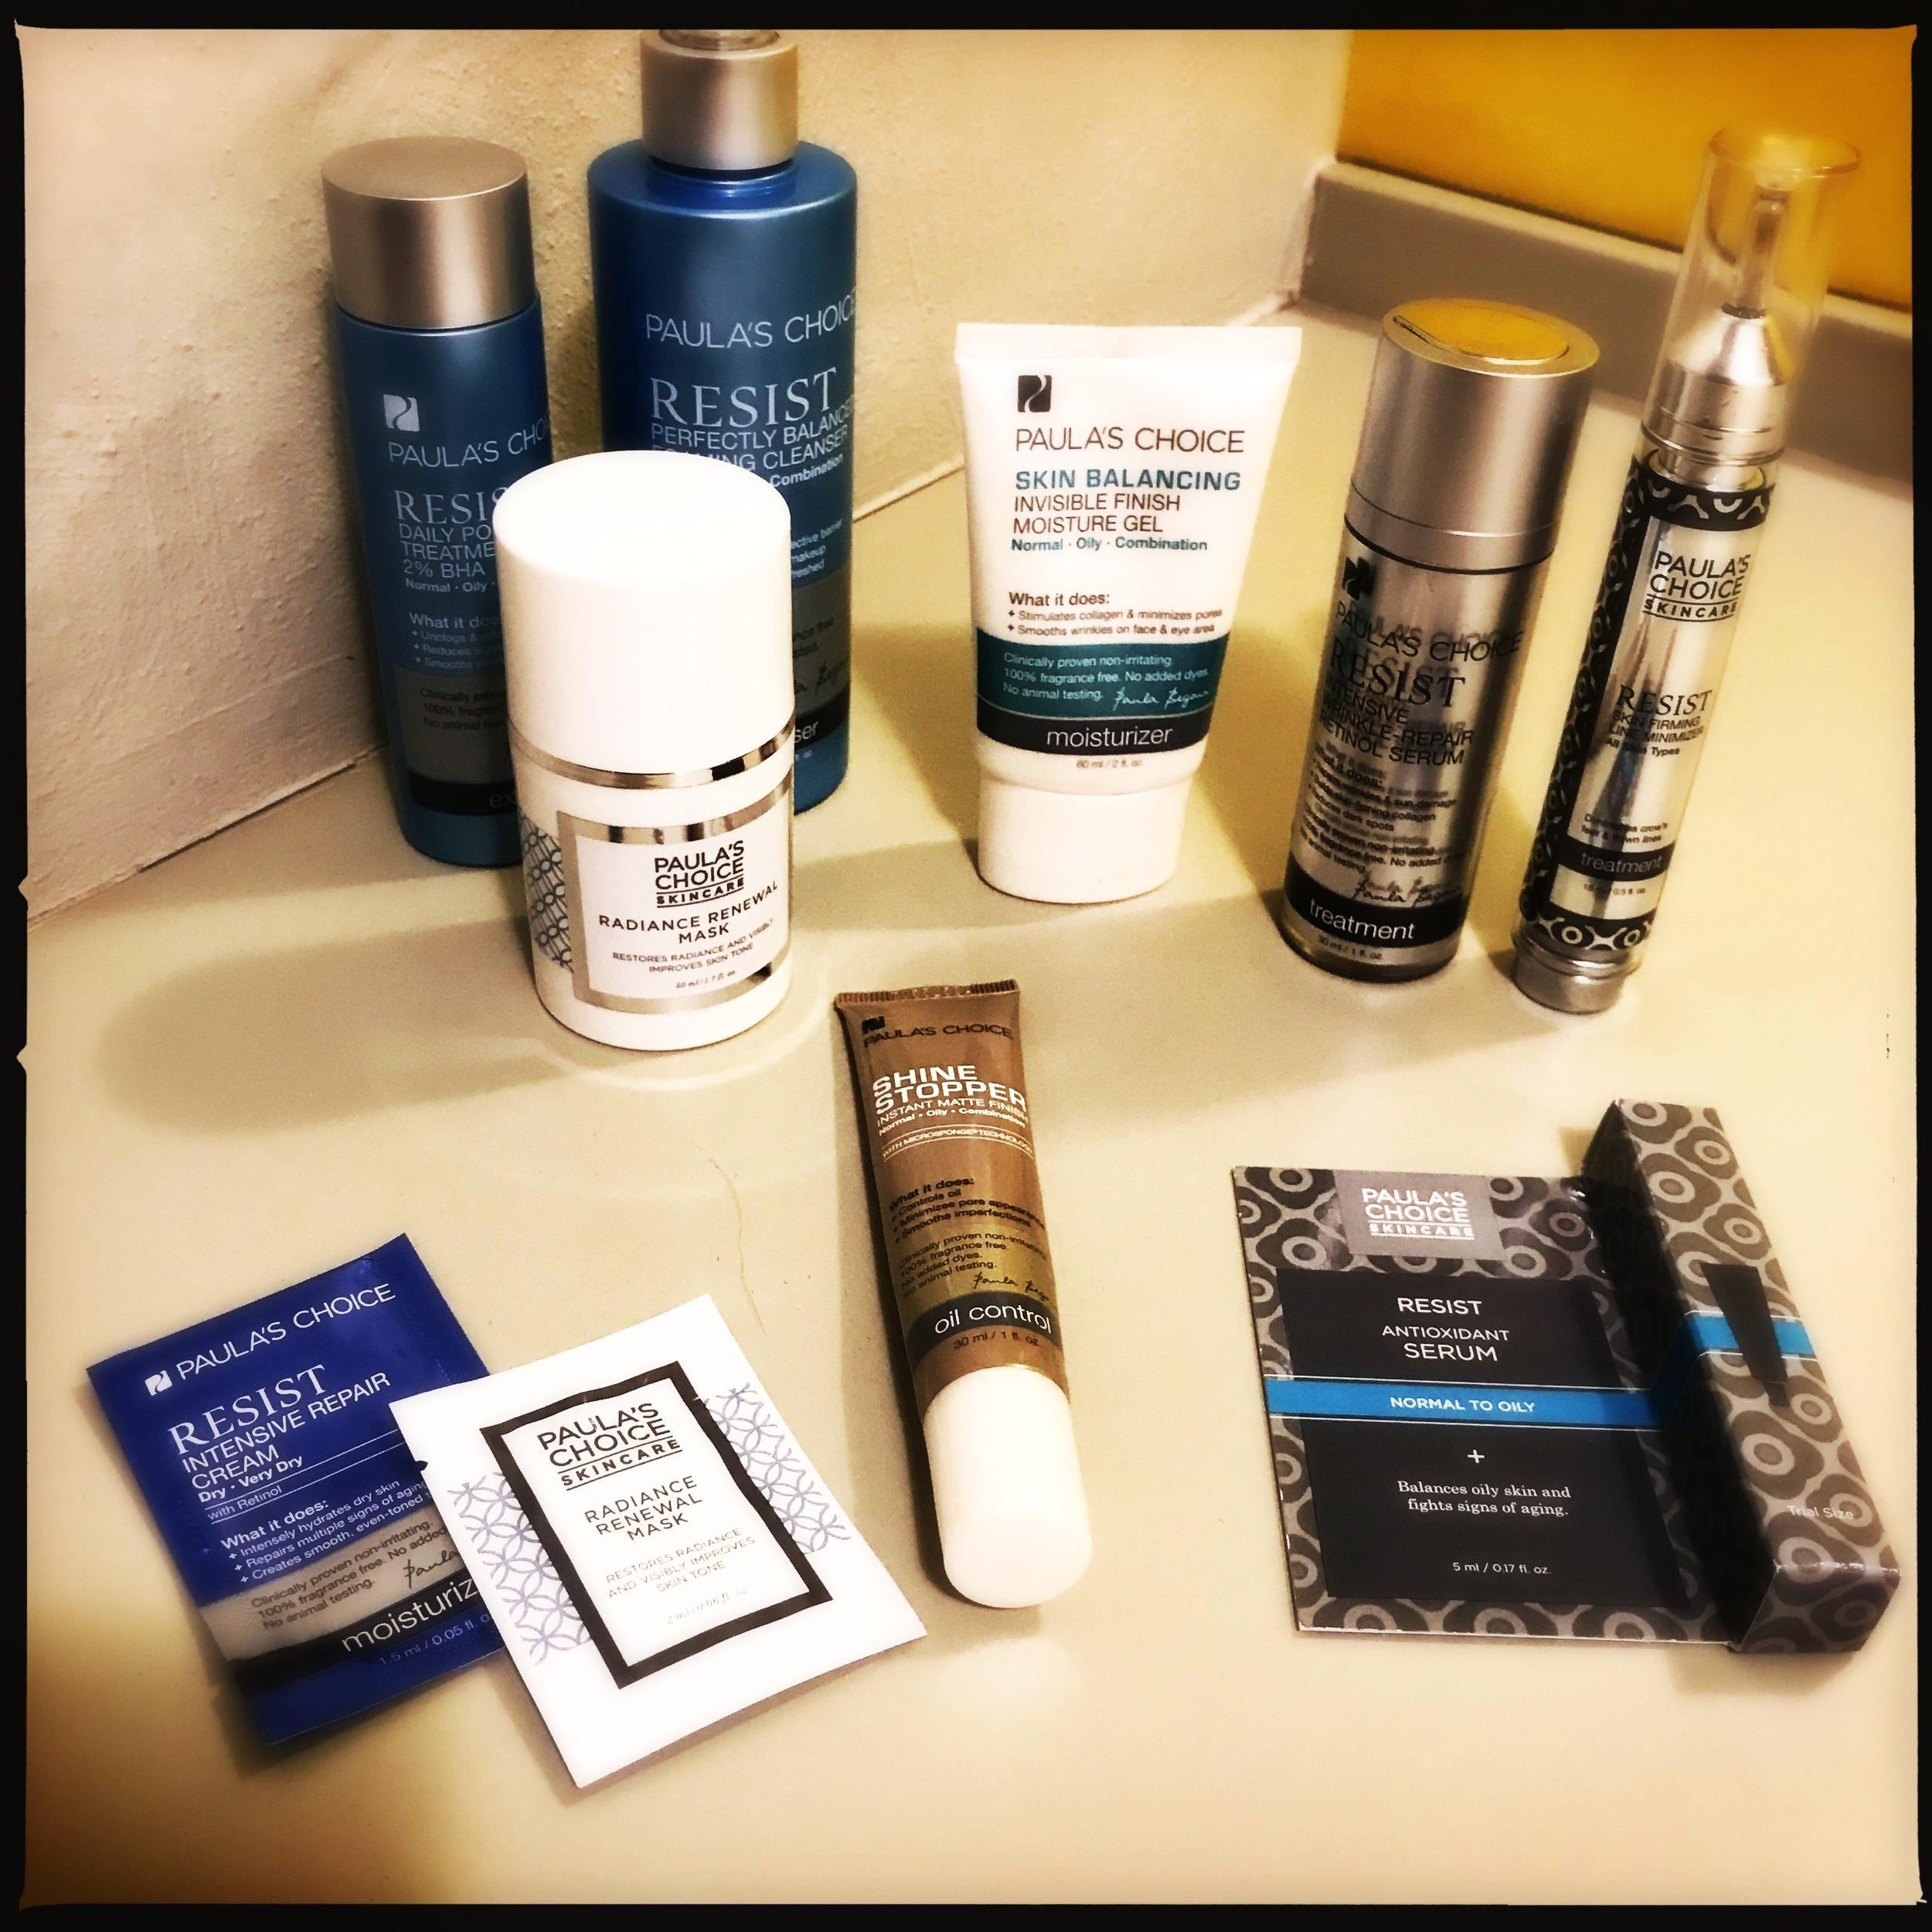 Paula's Choice beauty products